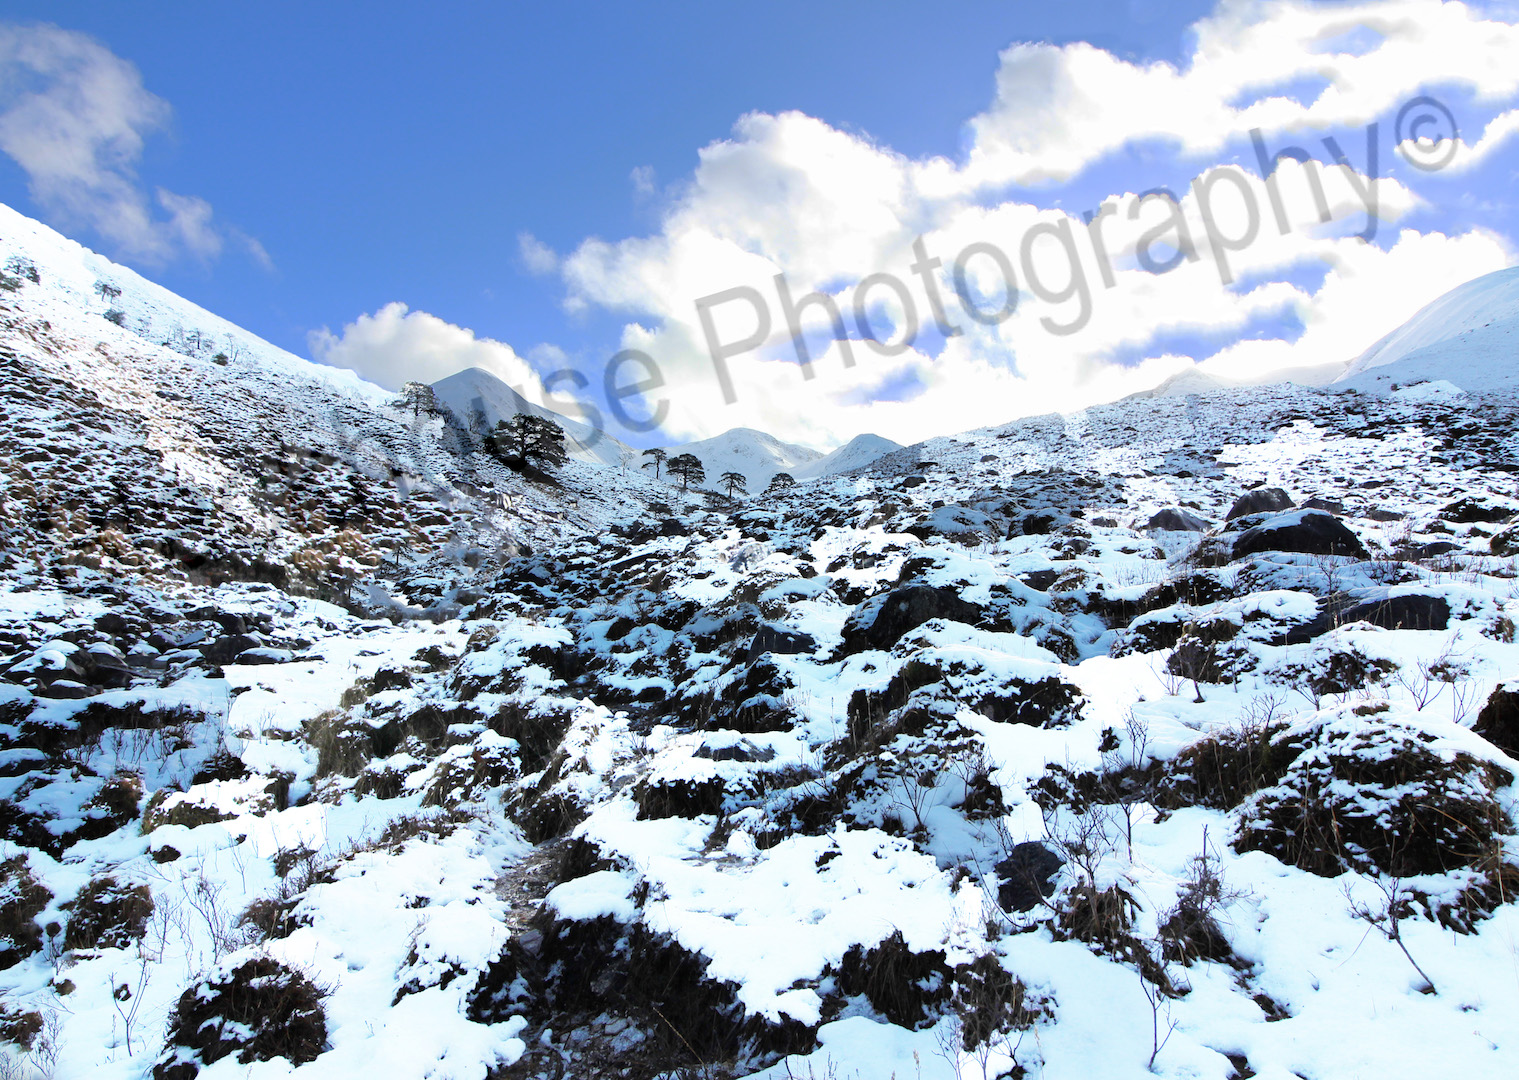 Blackhouse Photography snowy mountains Scotland